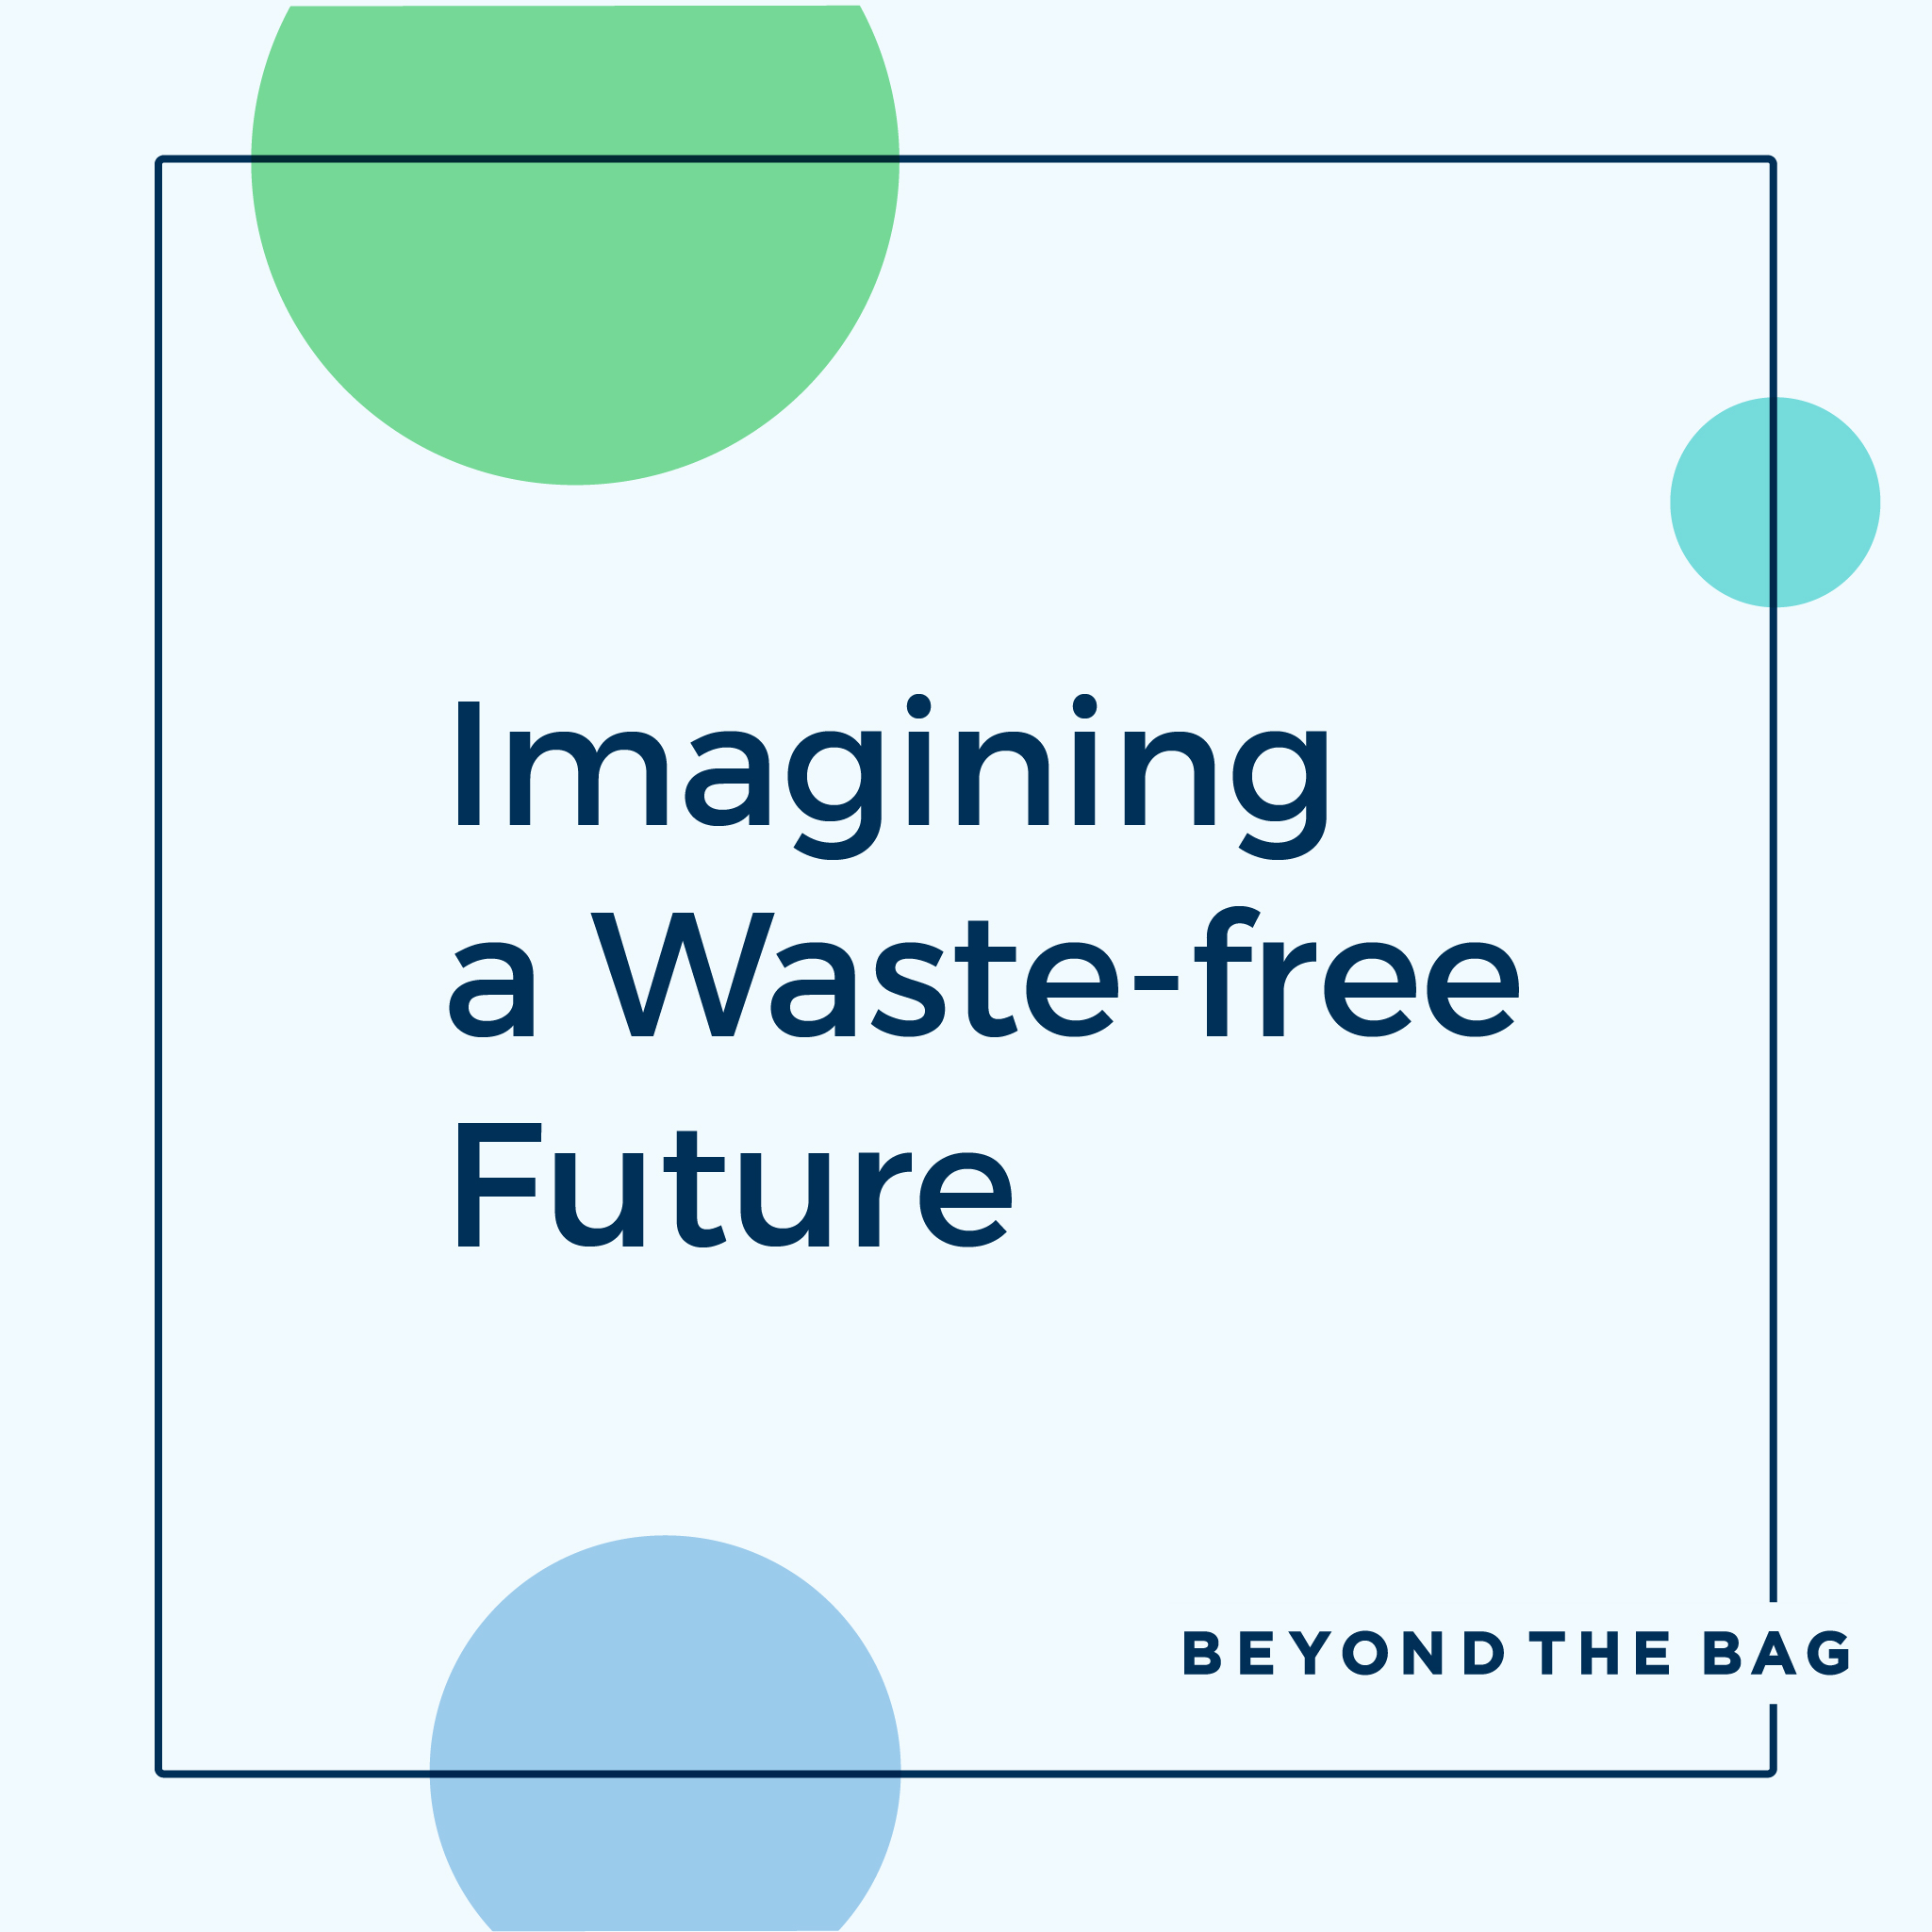 Imagine a waste-free future... Beyond the Bag